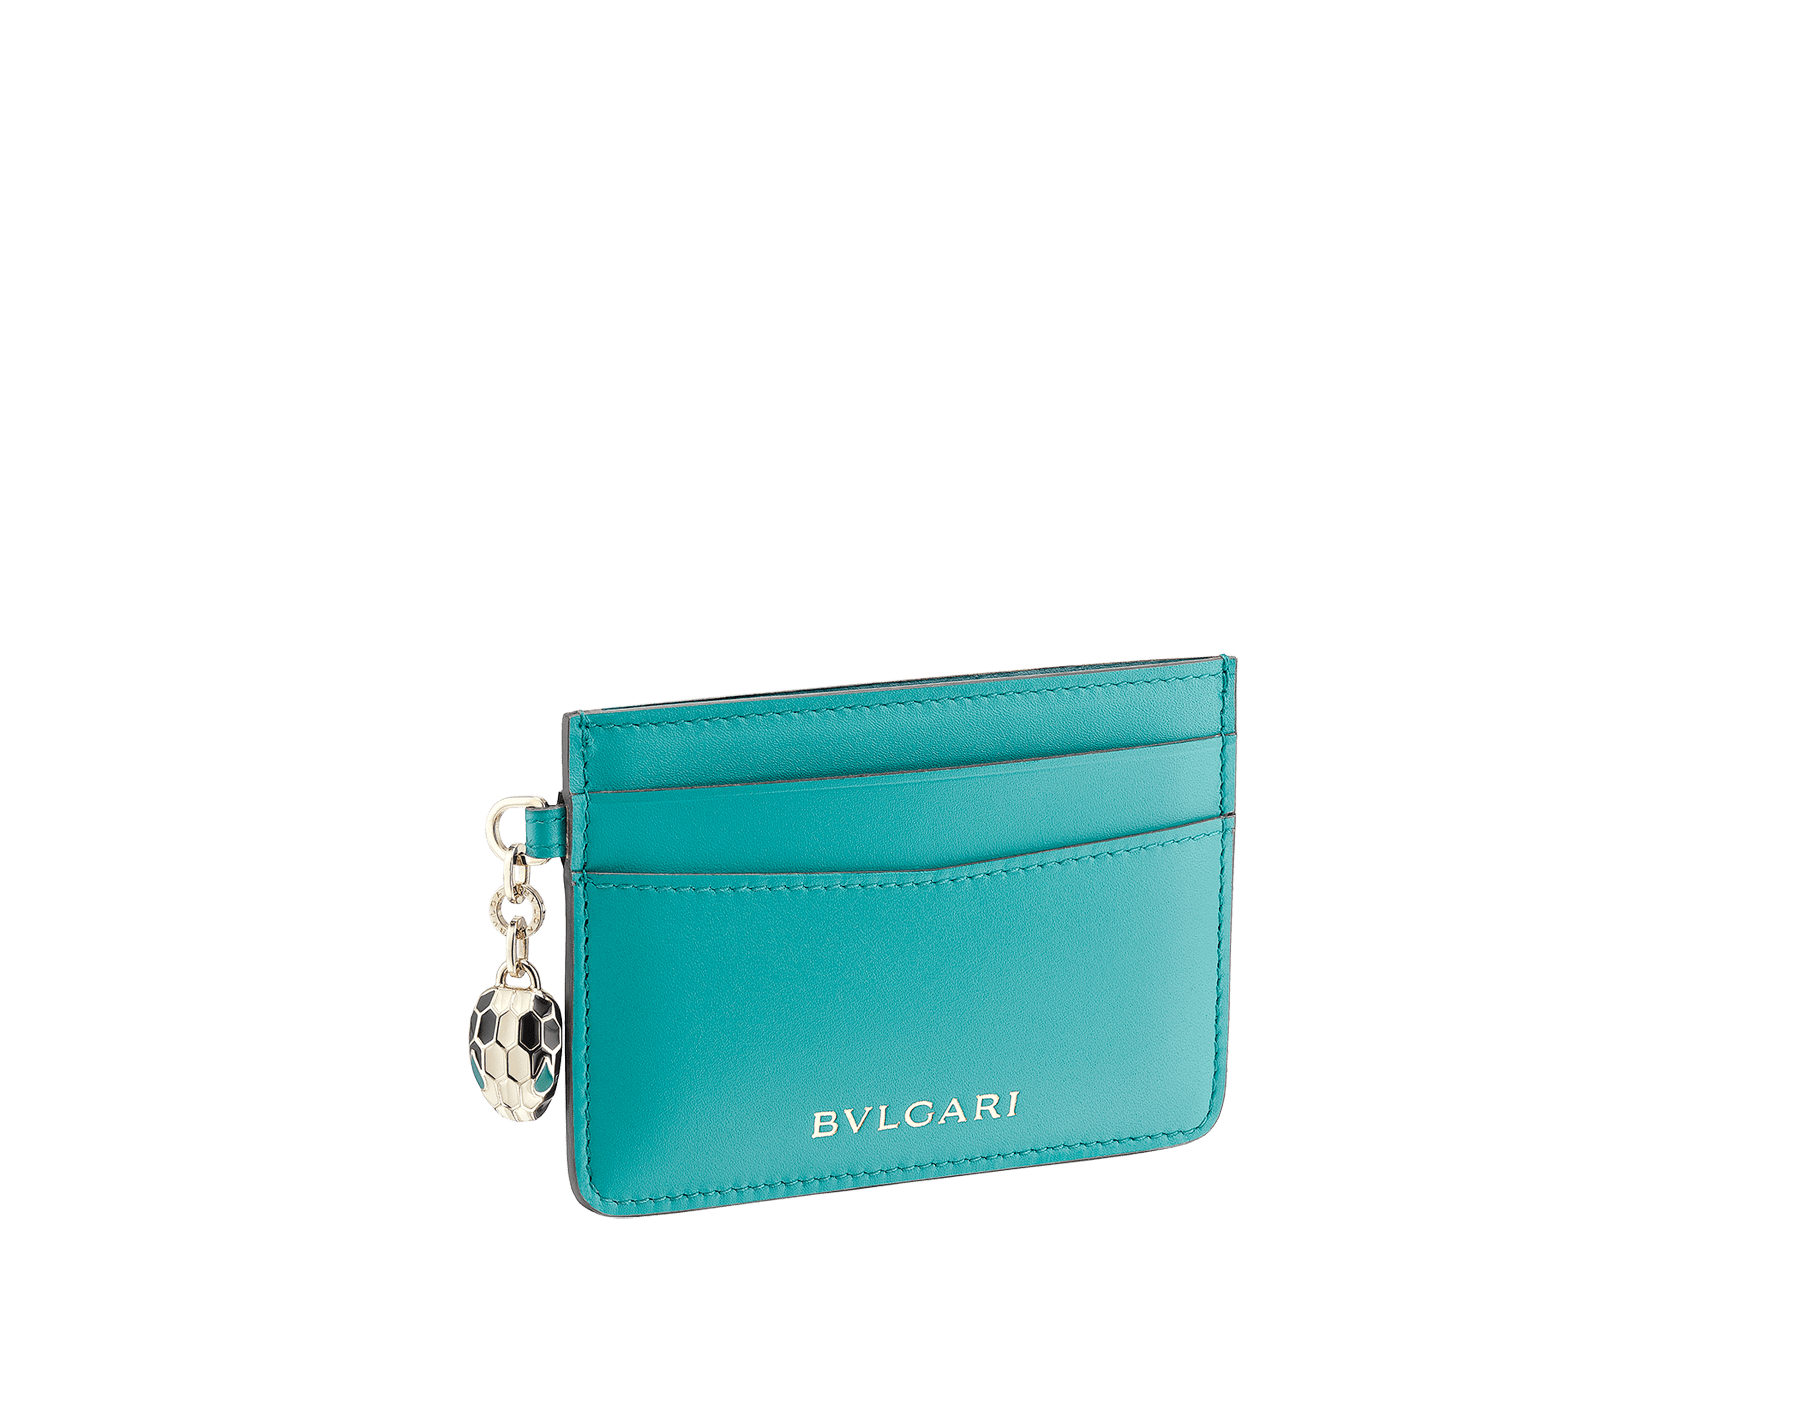 Serpenti Forever credit card holder in cobalt tourmaline and aster amethyst calf leather. Iconic snakehead charm in black and white enamel, with green malachite enamel eyes SEA-CC-HOLDER-CLc image 1